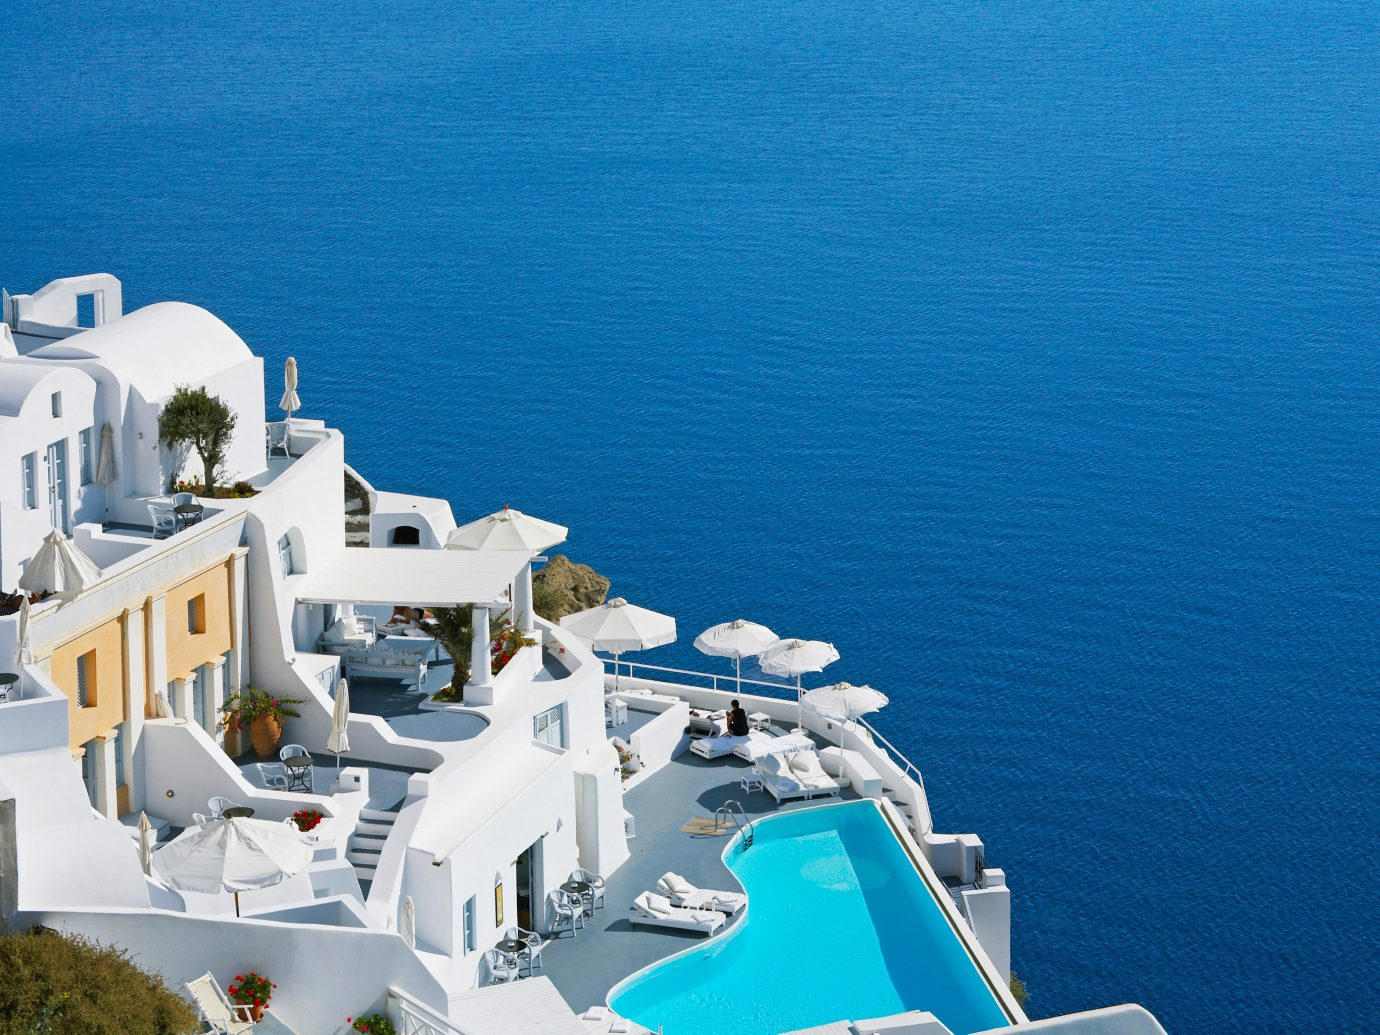 Adventure Architecture Beach Buildings Exterior Greece Hotels Islands Landmarks Luxury Travel Ocean Romance Santorini Scenic views Trip Ideas lego toy Sea vehicle marina passenger ship Coast dock watercraft